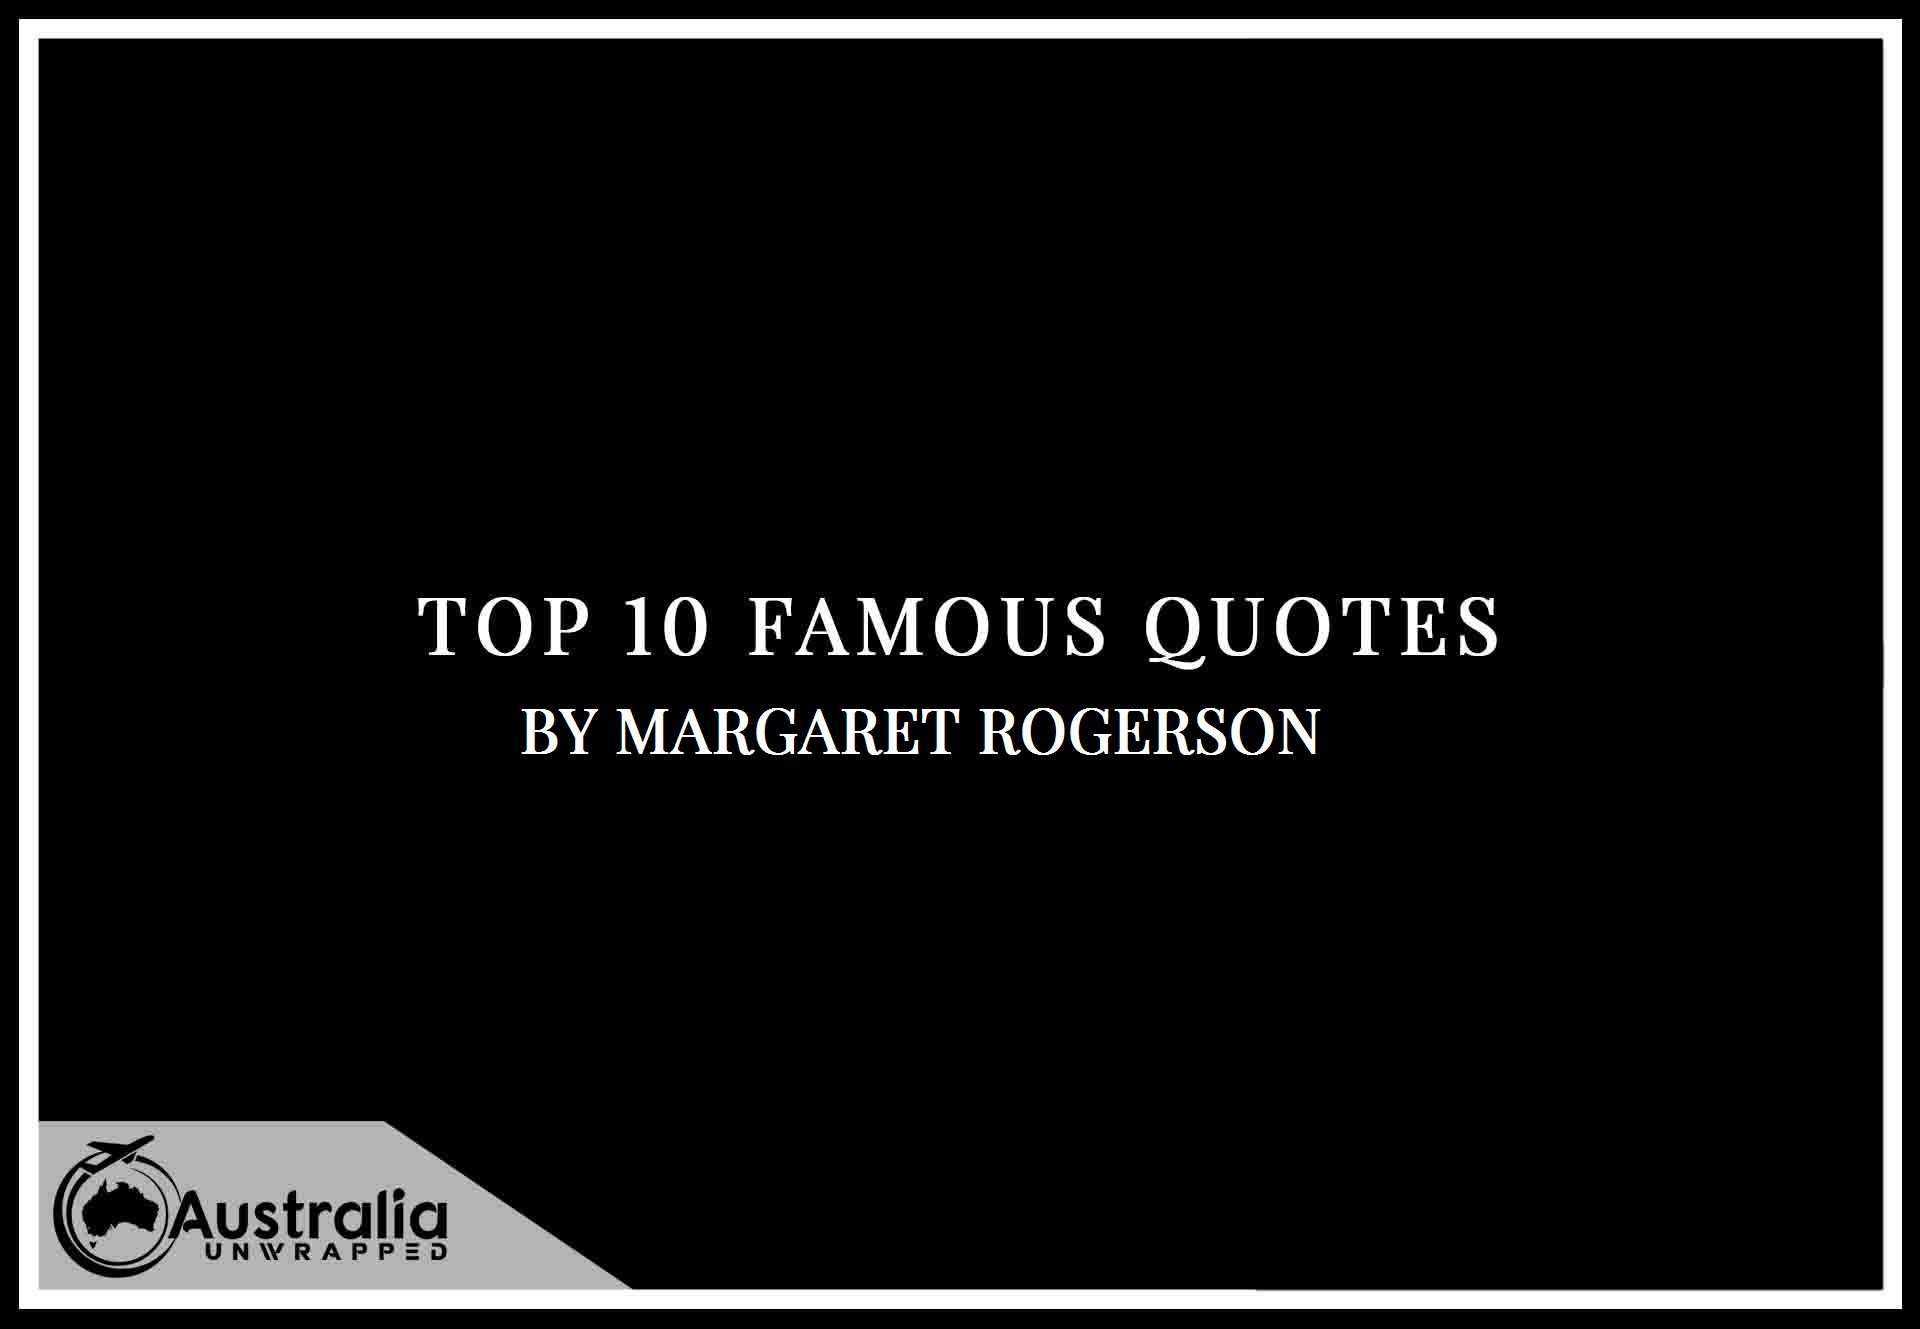 Margaret Rogerson's Top 10 Popular and Famous Quotes